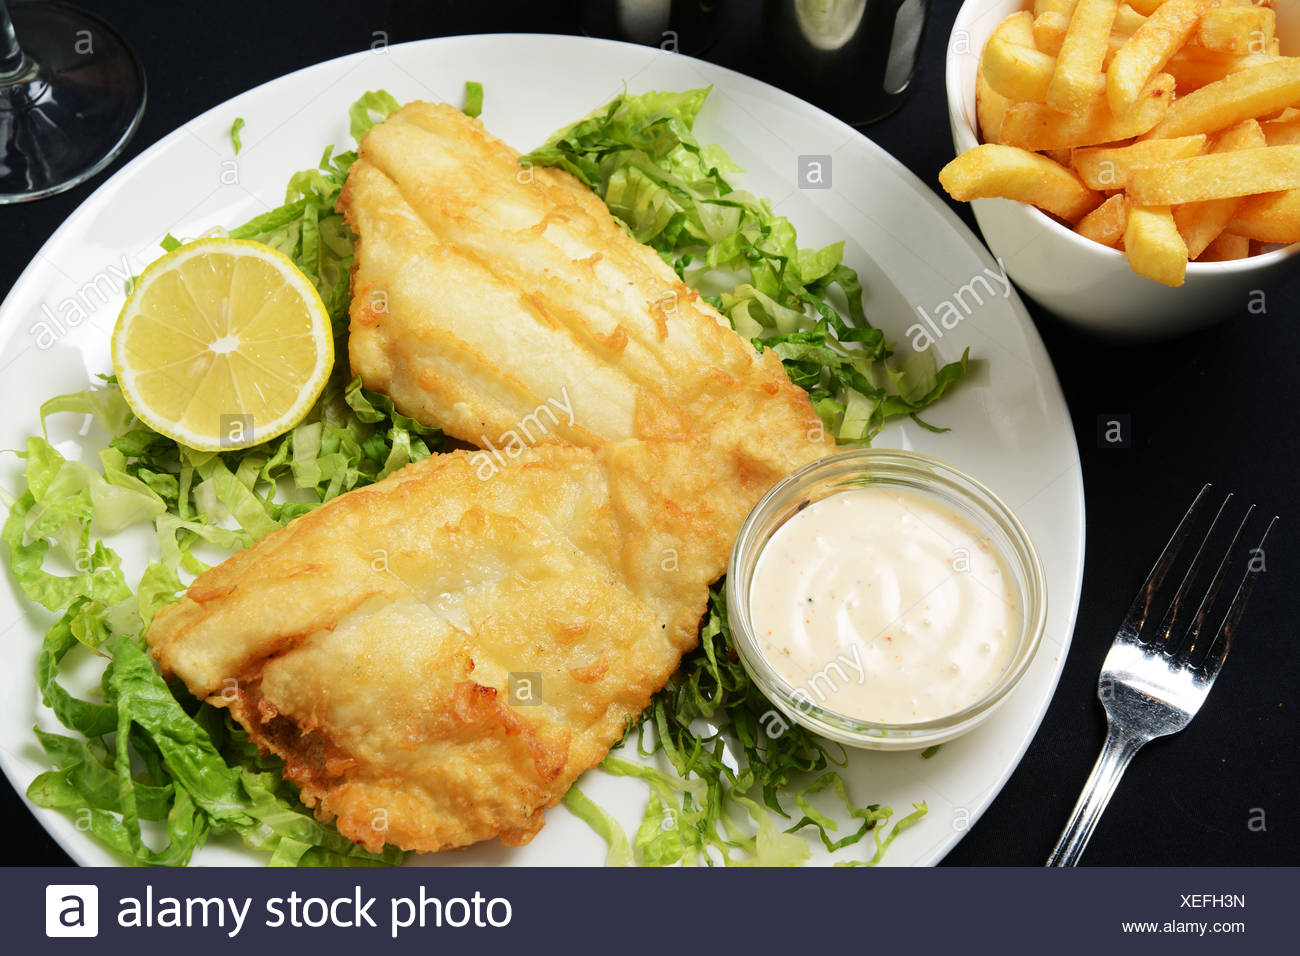 A plate of fried Fish and Chips served on lettuce - Stock Image